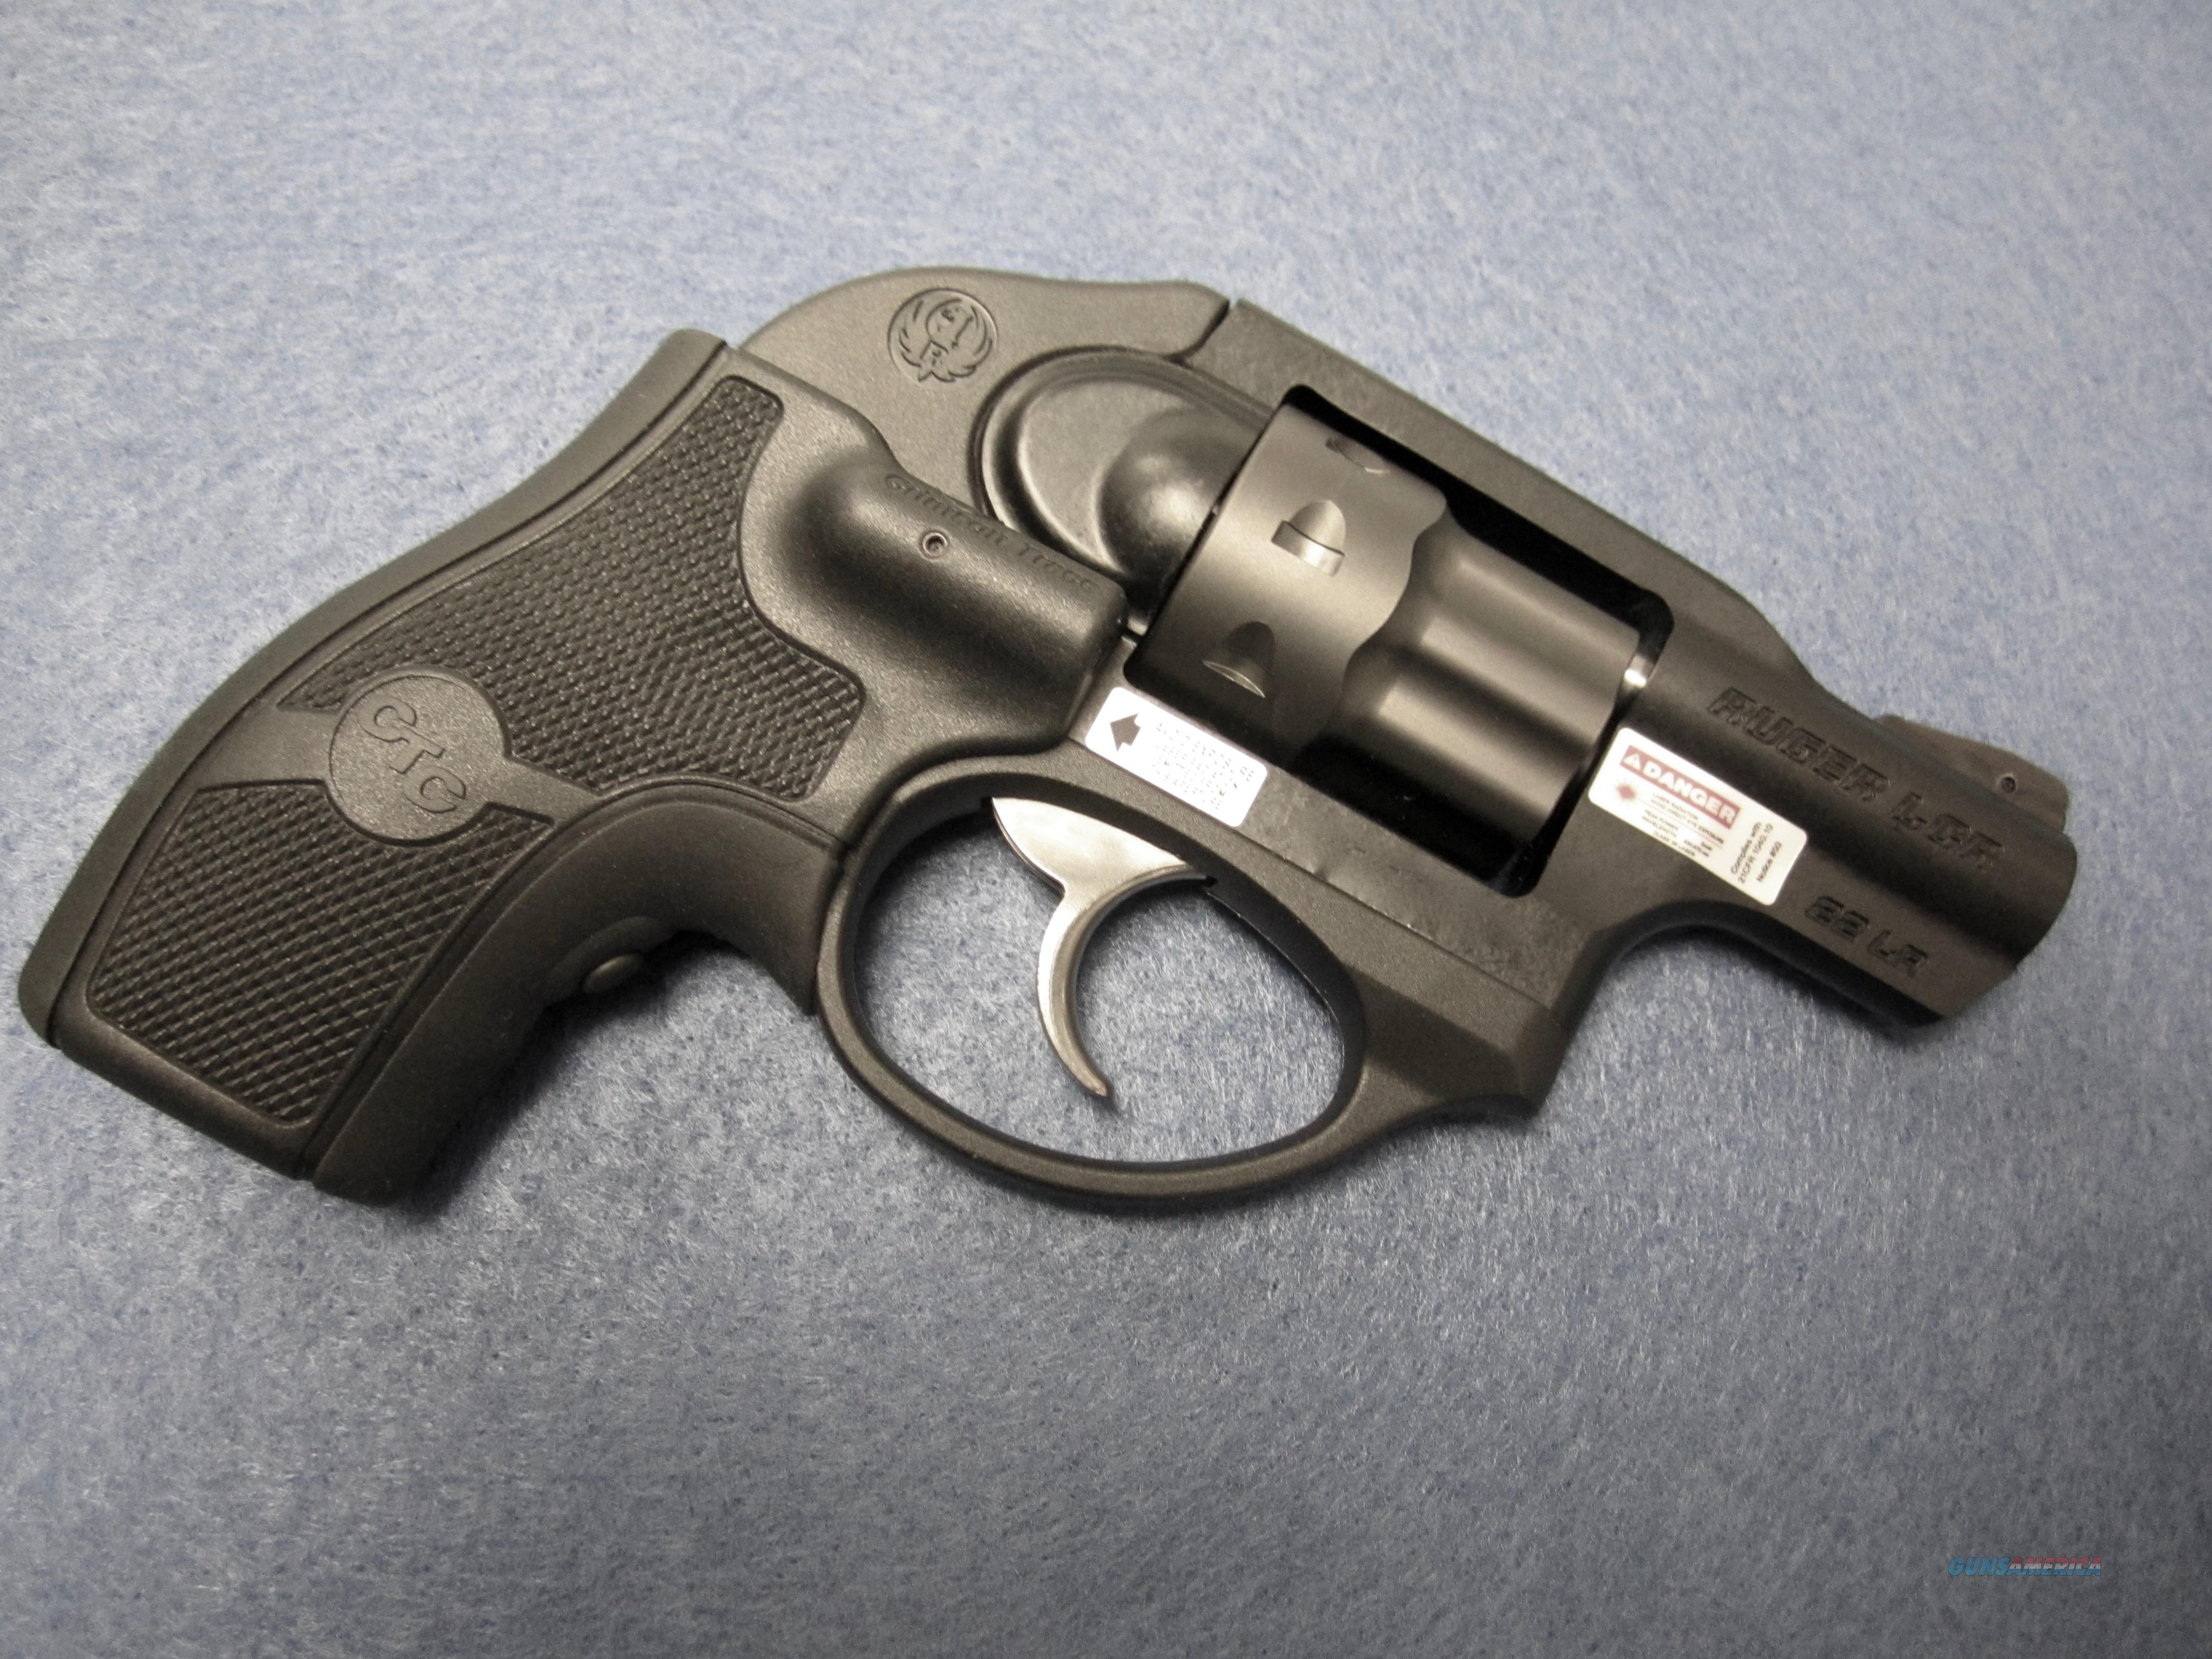 NIB Ruger LCR .22LR LG revolver with Laser Grip!  Guns > Pistols > Ruger Double Action Revolver > LCR